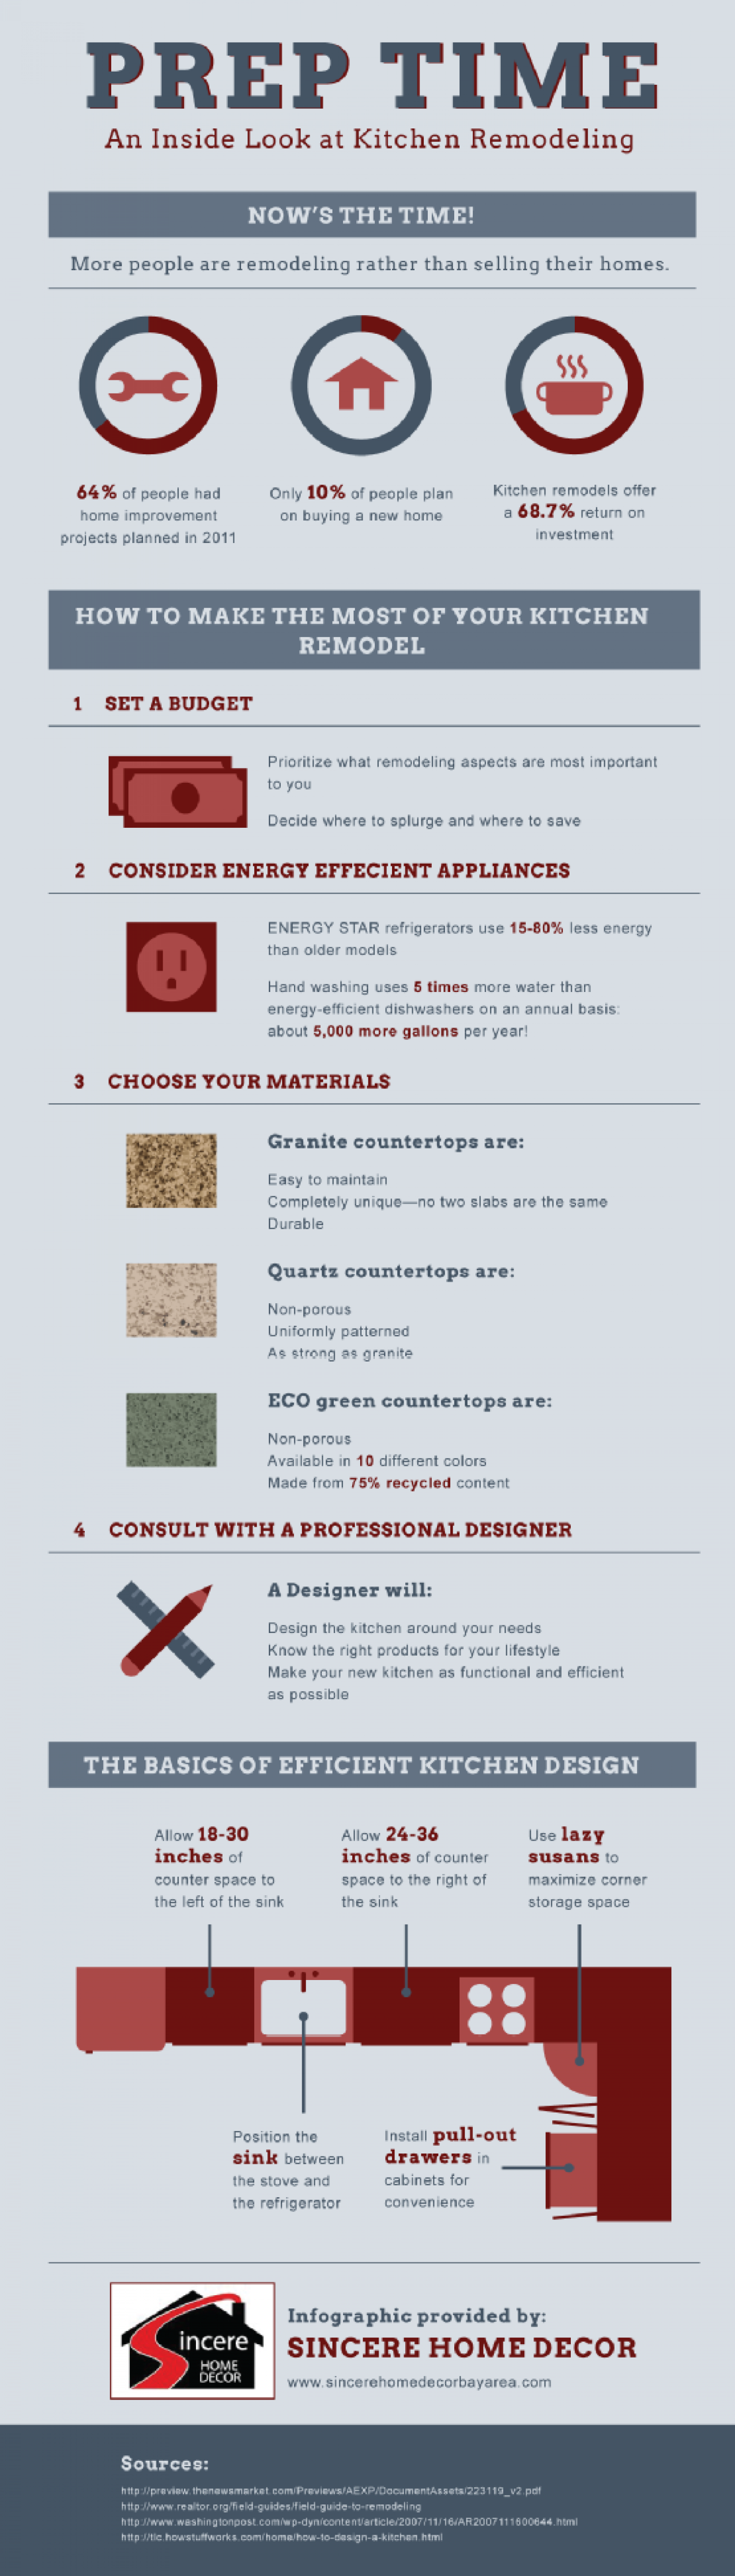 An Inside Look at Kitchen Remodeling Infographic